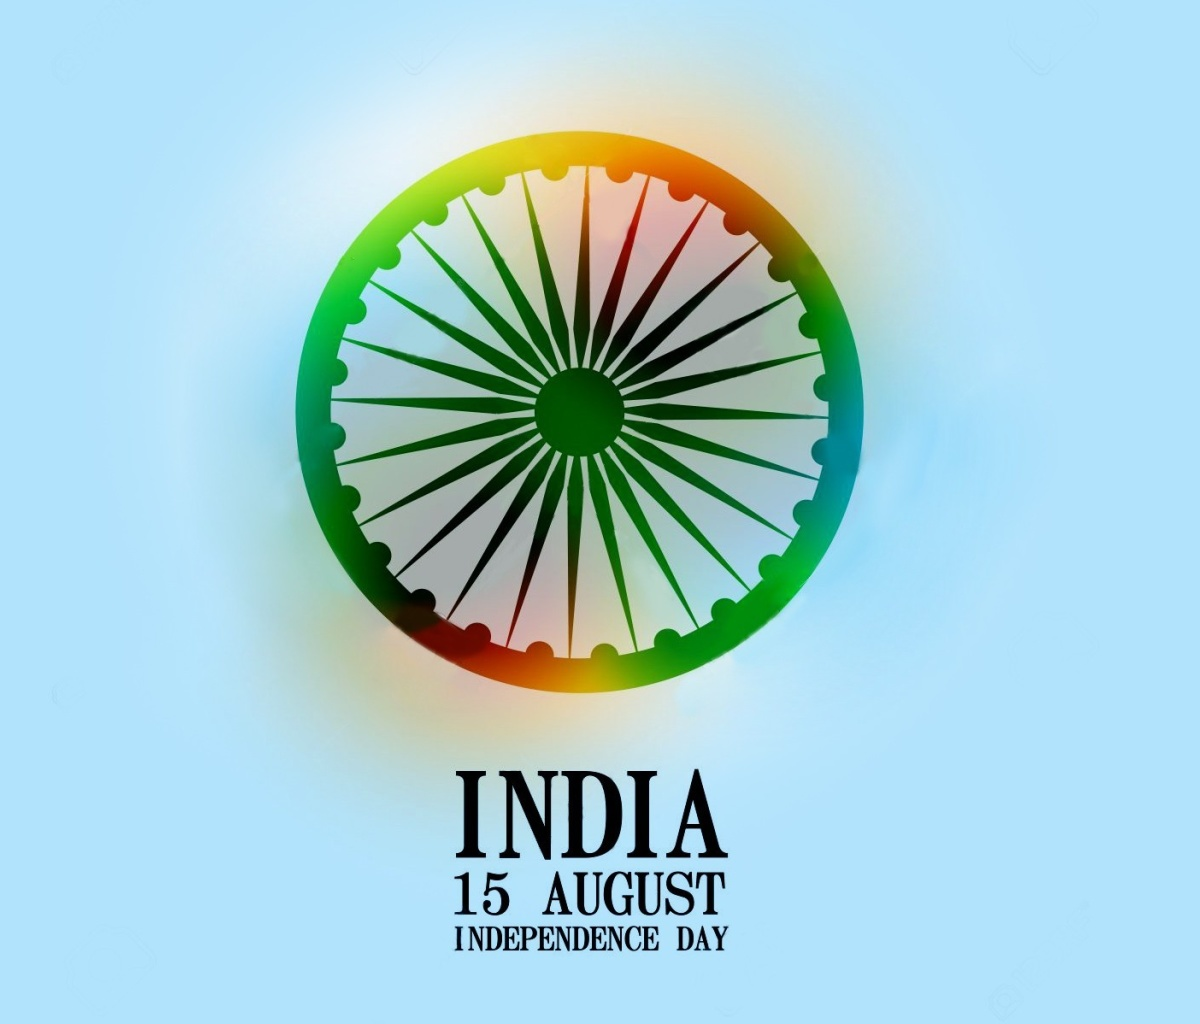 15 august India celebrates independence day on august 15 each year india became an independent nation on august 15, 1947, so a gazetted holiday is held annually to remember this date.